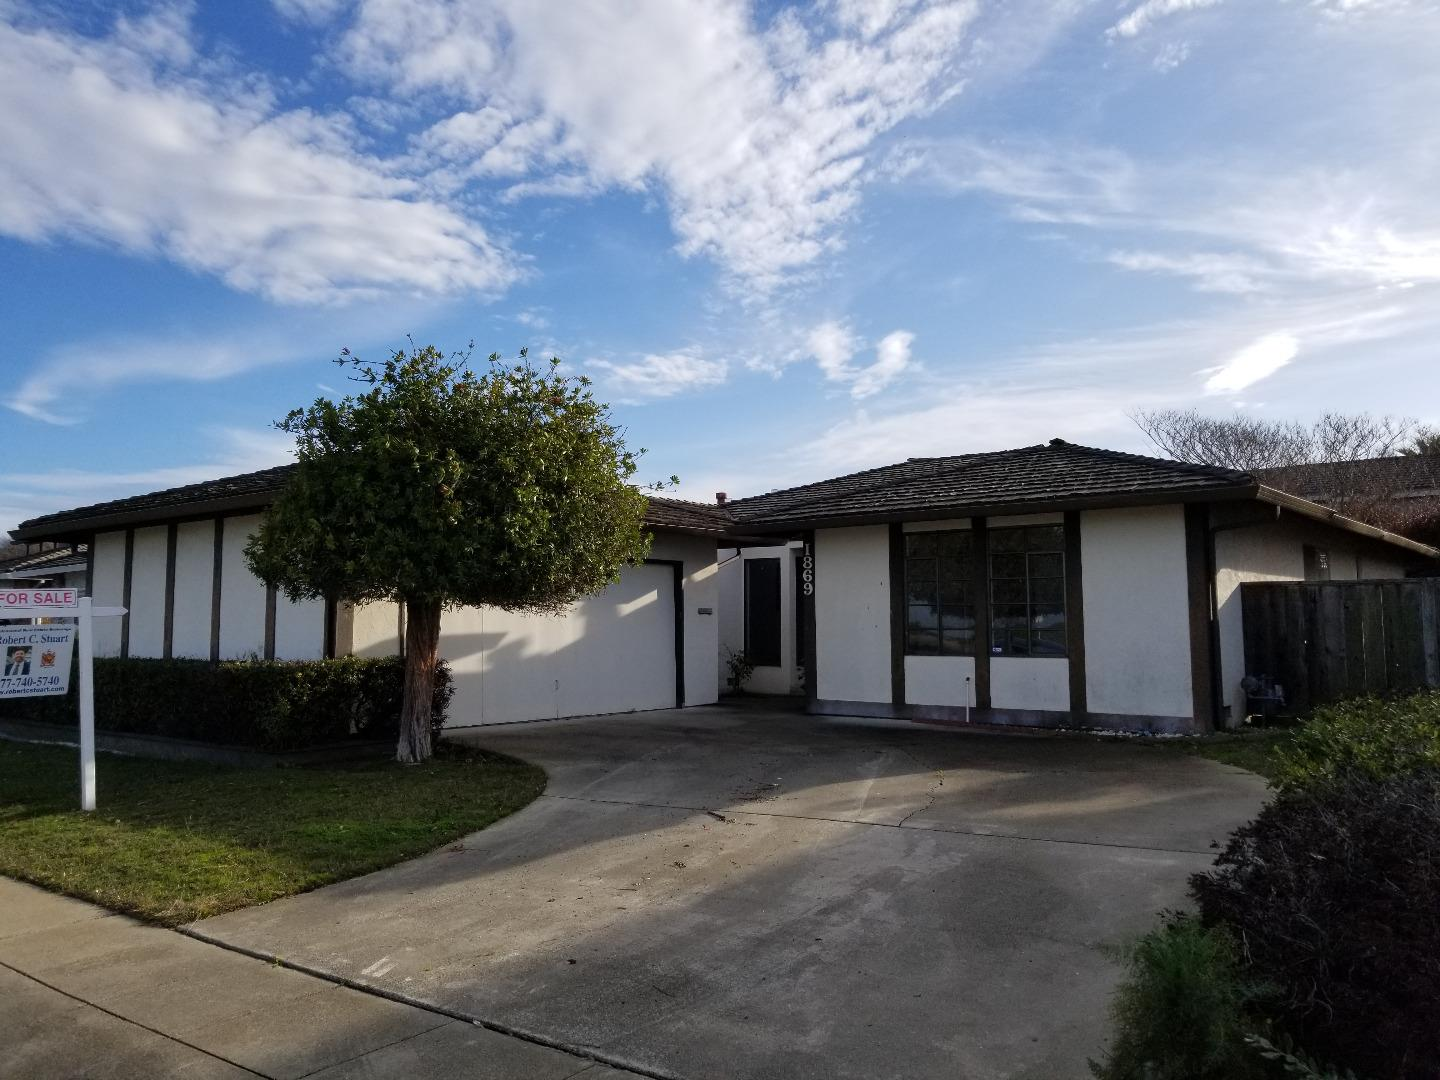 1869 Beach Park BLVD, FOSTER CITY, California 94404, 3 Bedrooms Bedrooms, ,2 BathroomsBathrooms,Residential,For Sale,1869 Beach Park BLVD,ML81780645